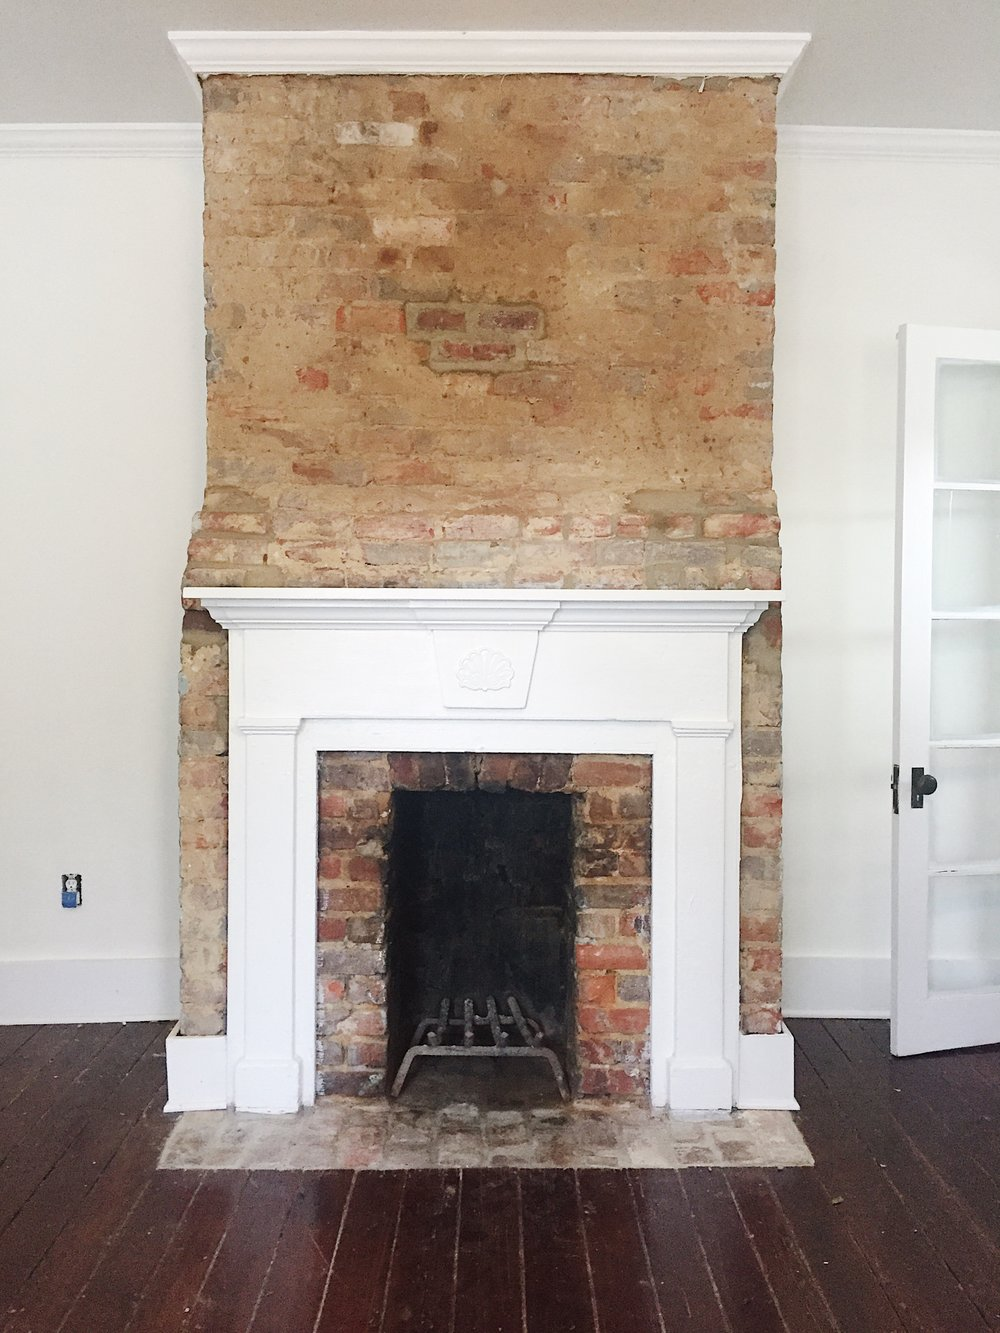 Charleston_south_carolina_exposed_fireplace_historic_home_bedroom_renovation_fireplace_mantle__.JPG